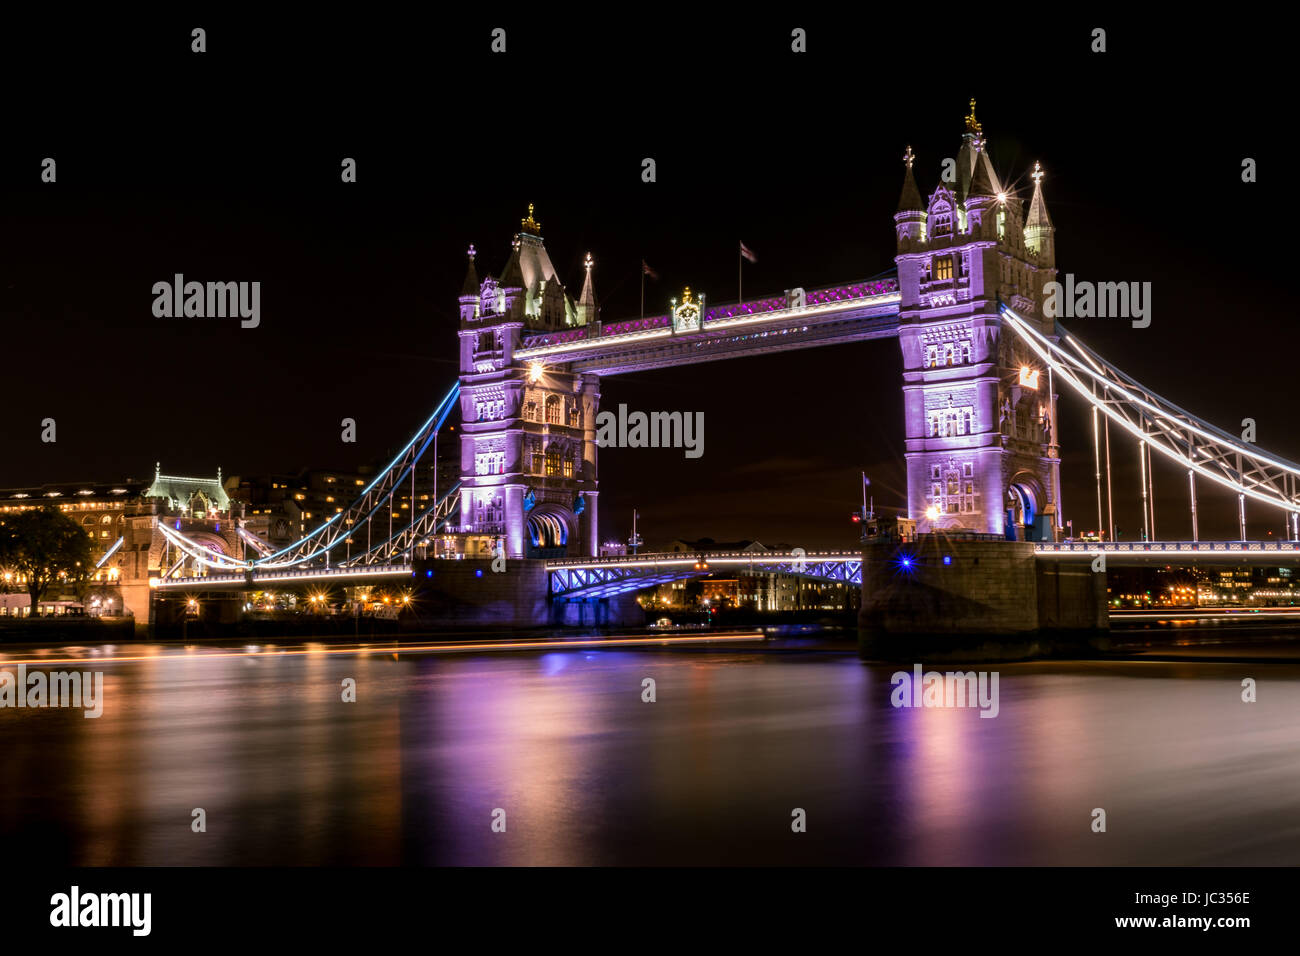 Tower Bridge - Stock Image